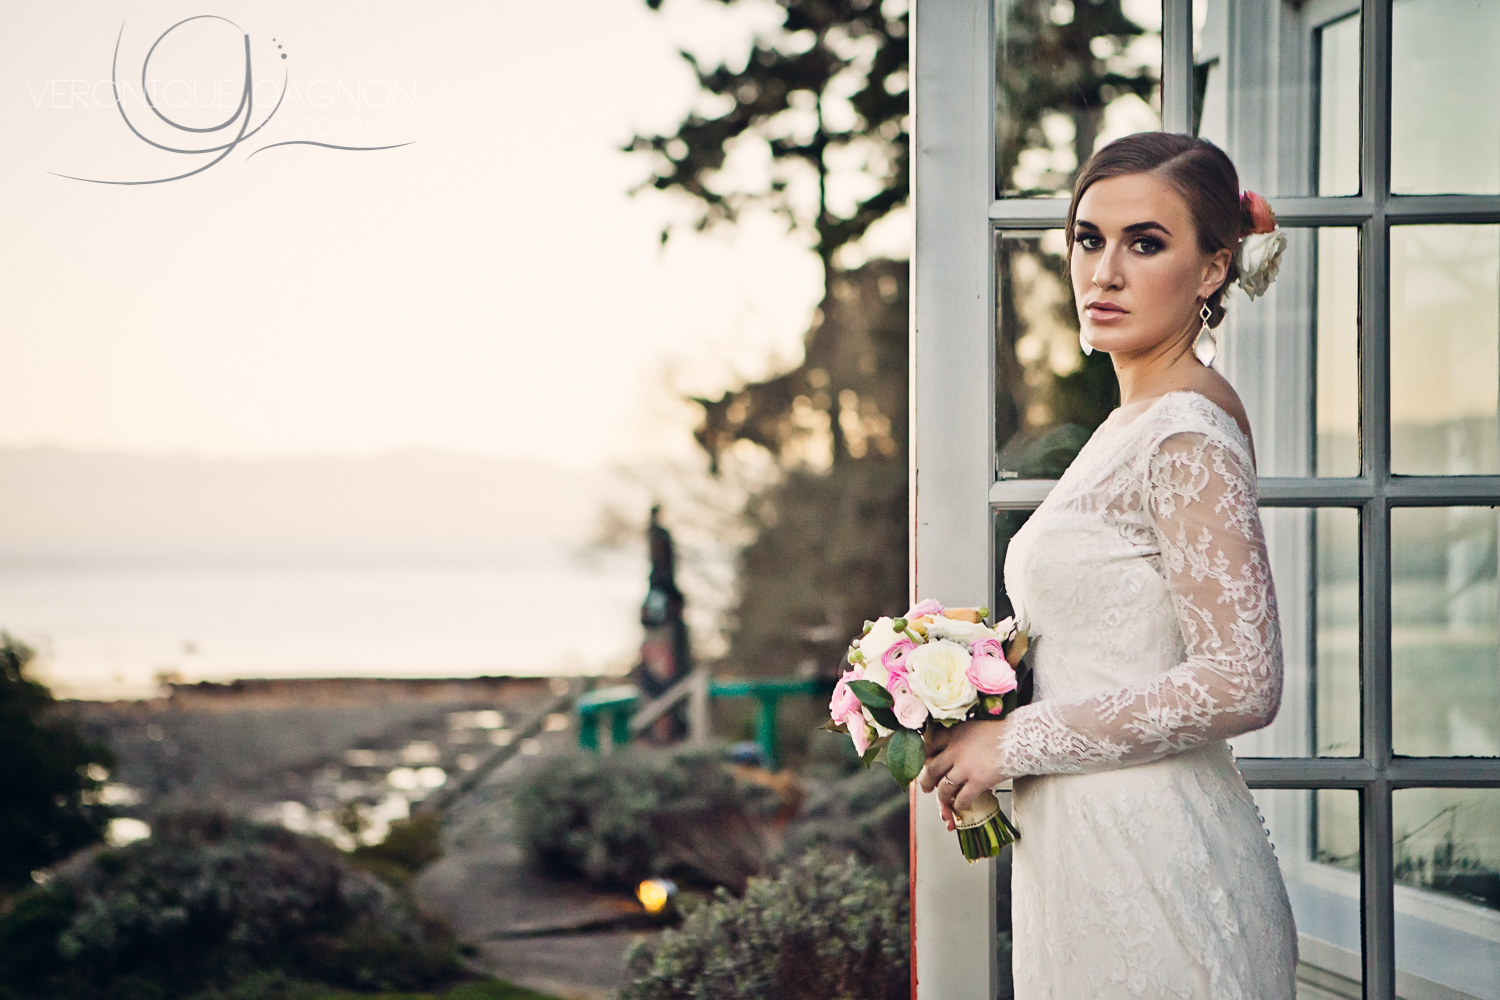 Marjorie wearing a beautiful lace wedding gown from  Blush Bridal boutique  in Victoria and stunning Leah Alexandra earrings from  Violette boutique .